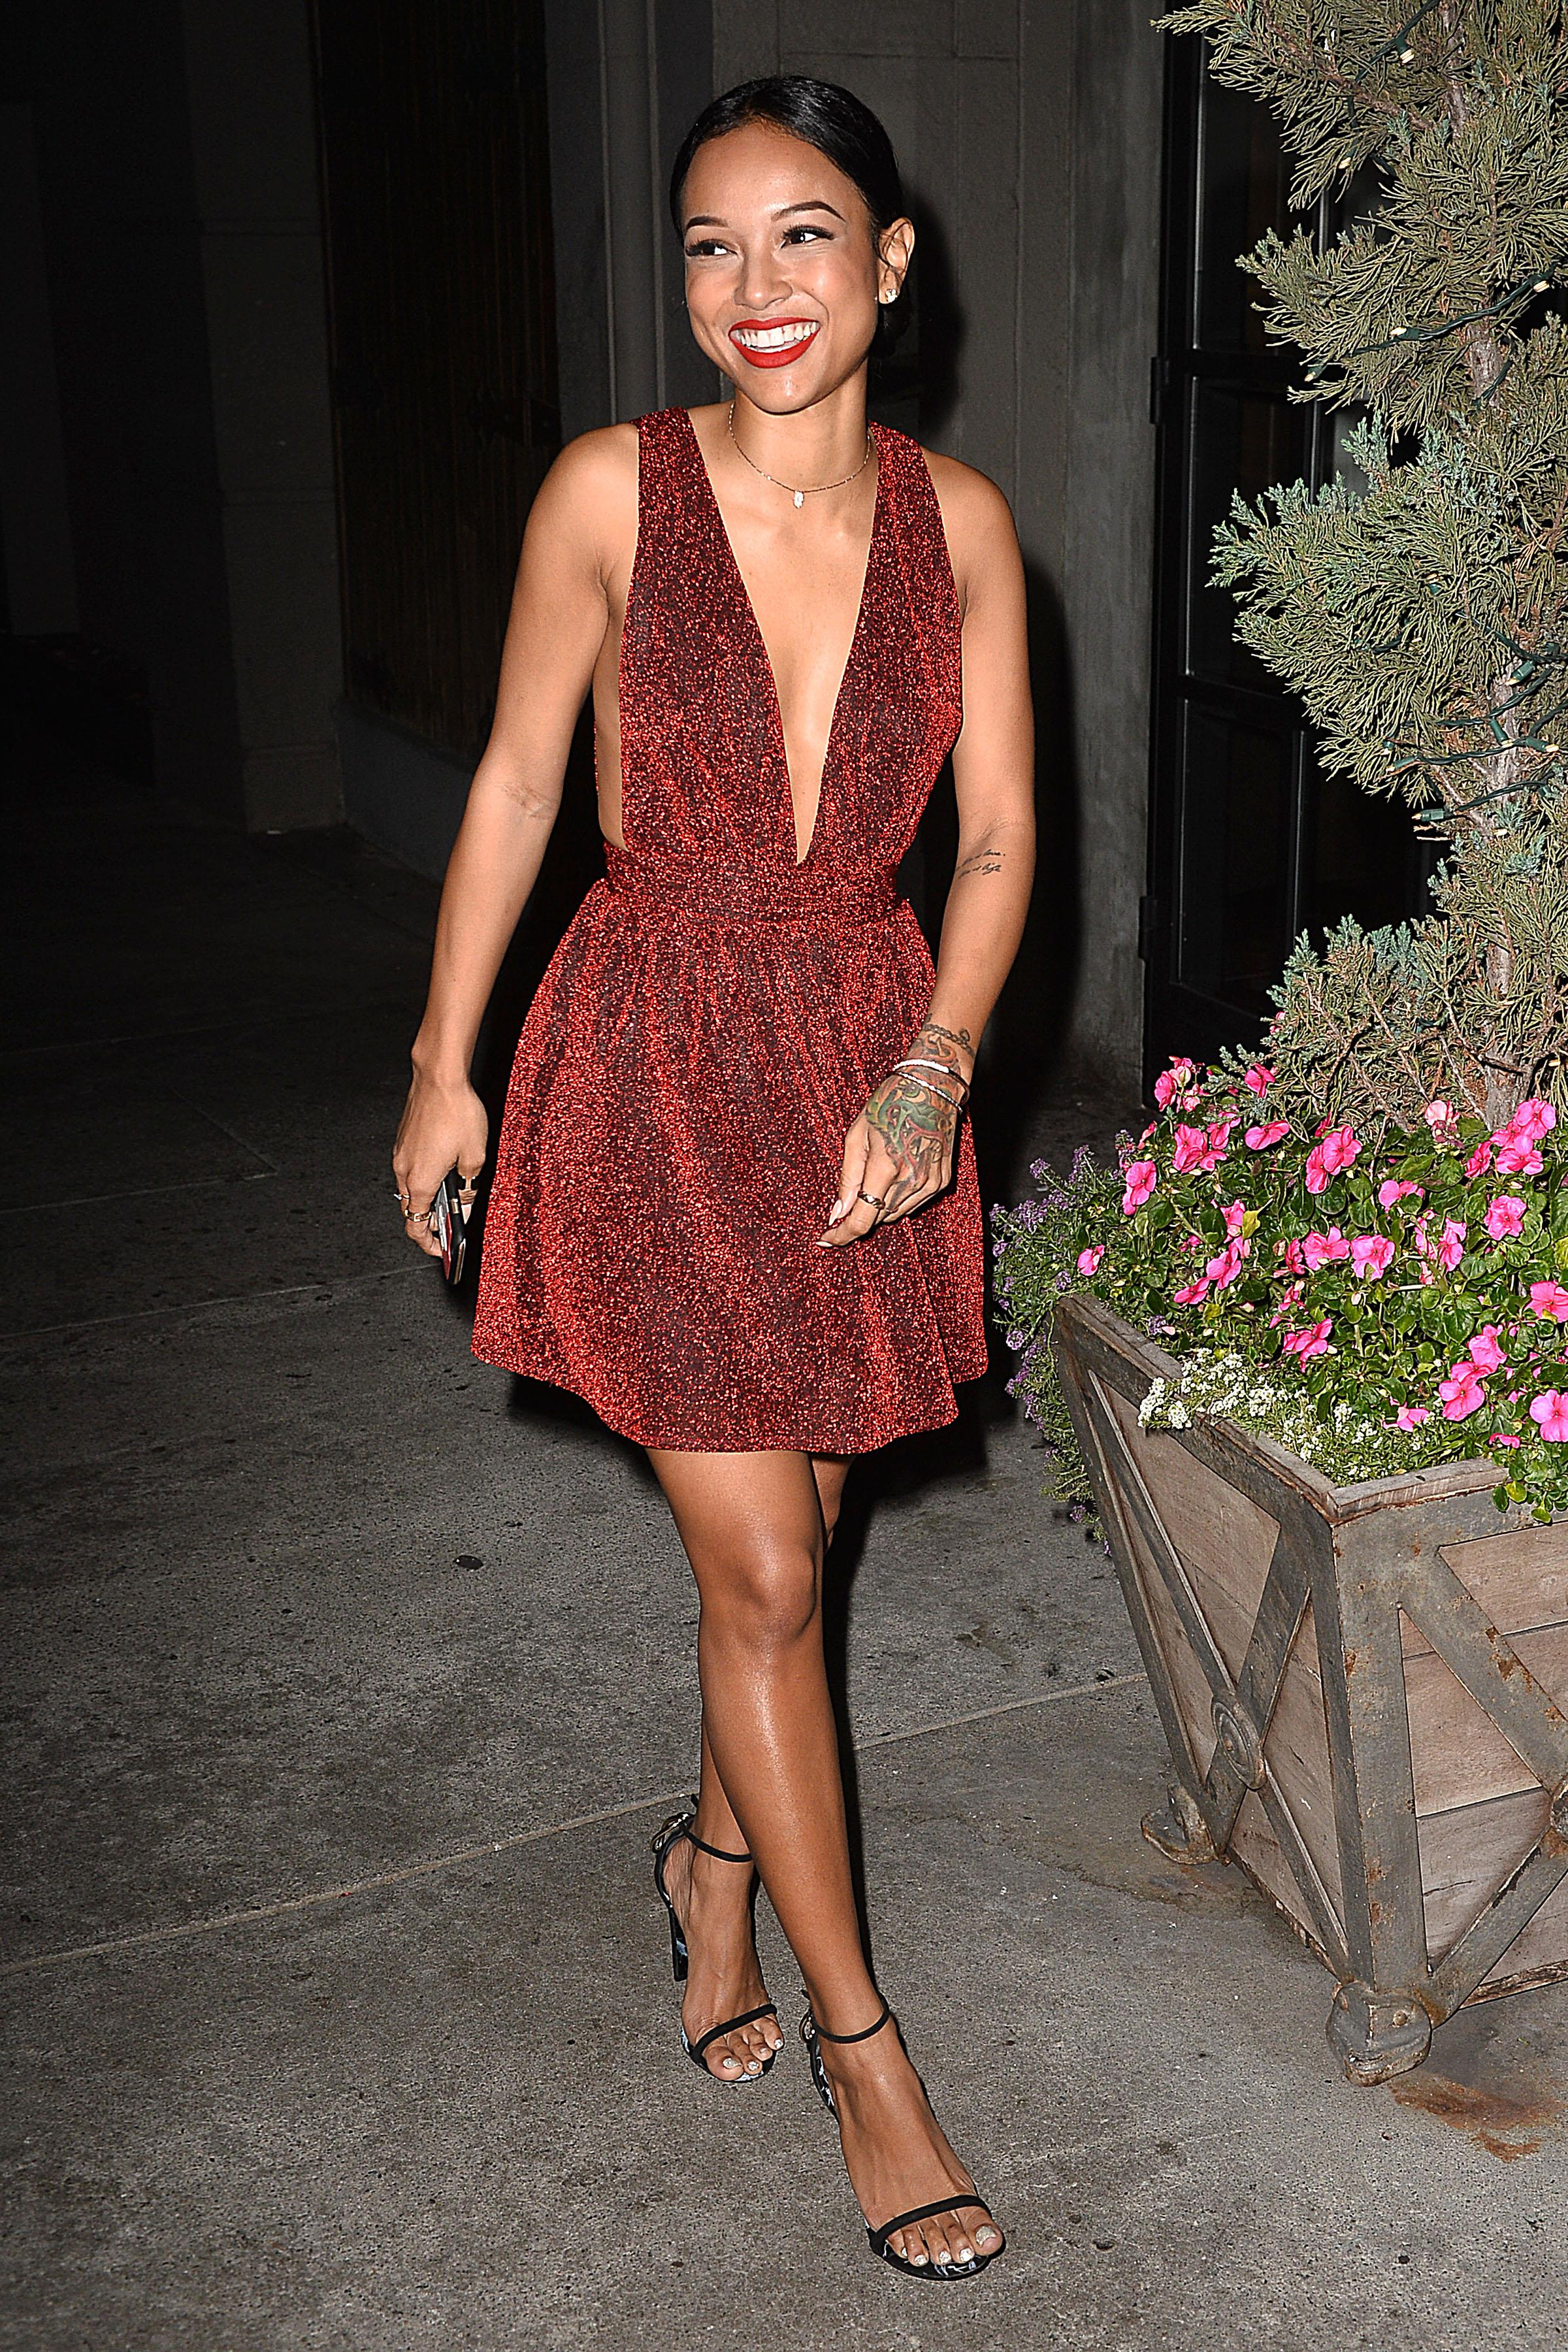 Karrueche Tran seen heading to dinner at Aventine in Hollywood, CA